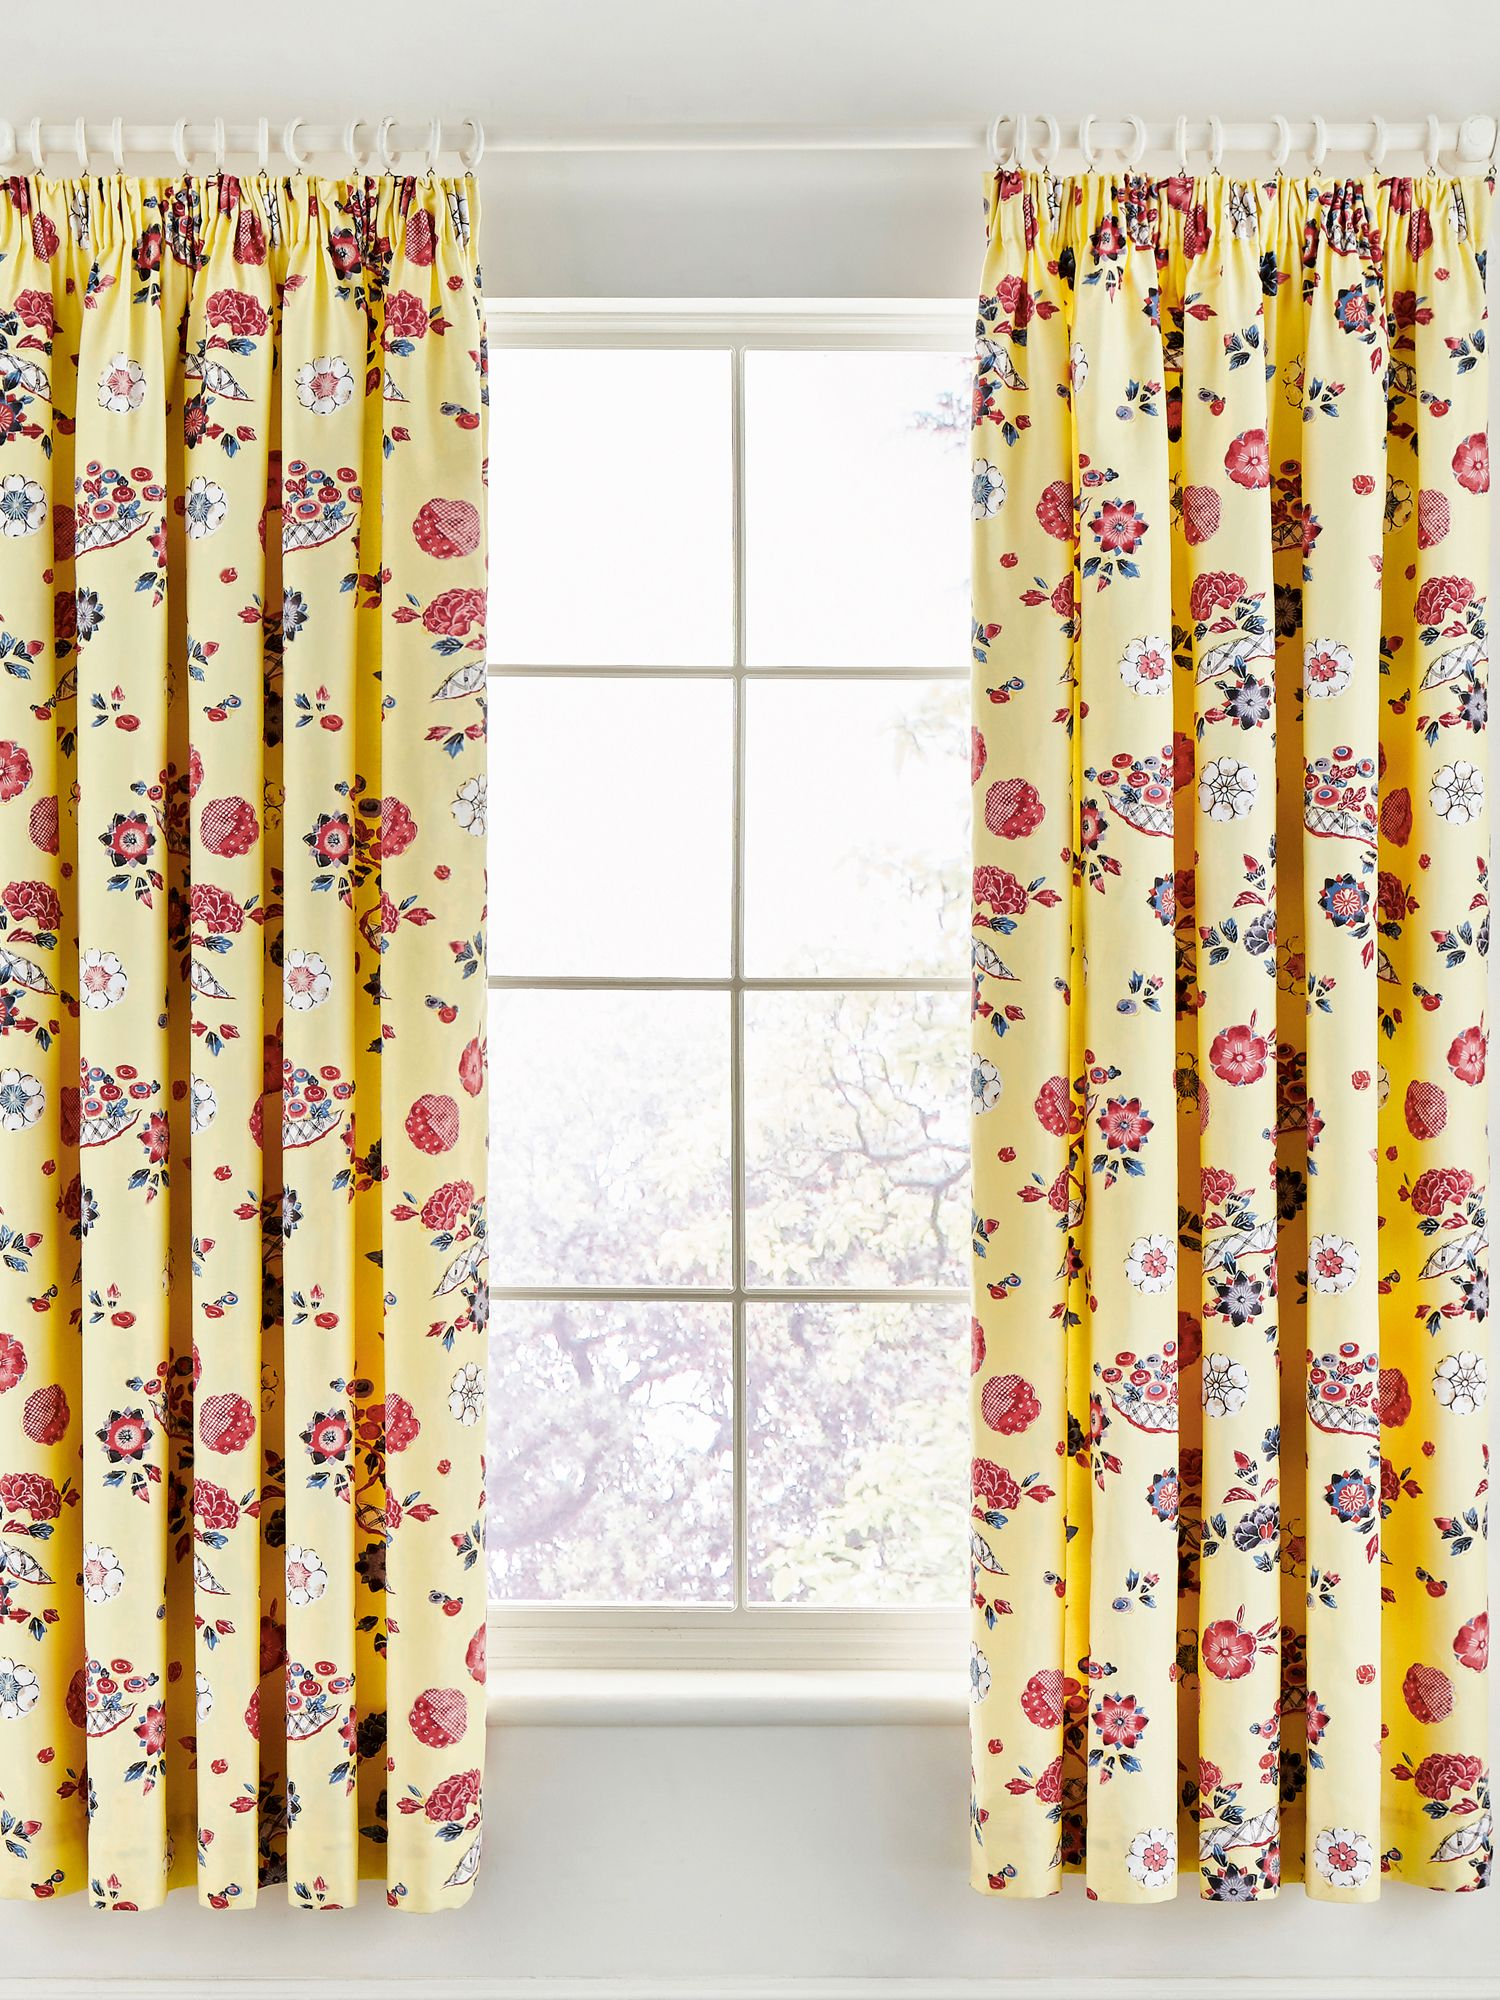 buy cheap yellow curtains compare curtains blinds prices for best uk deals. Black Bedroom Furniture Sets. Home Design Ideas